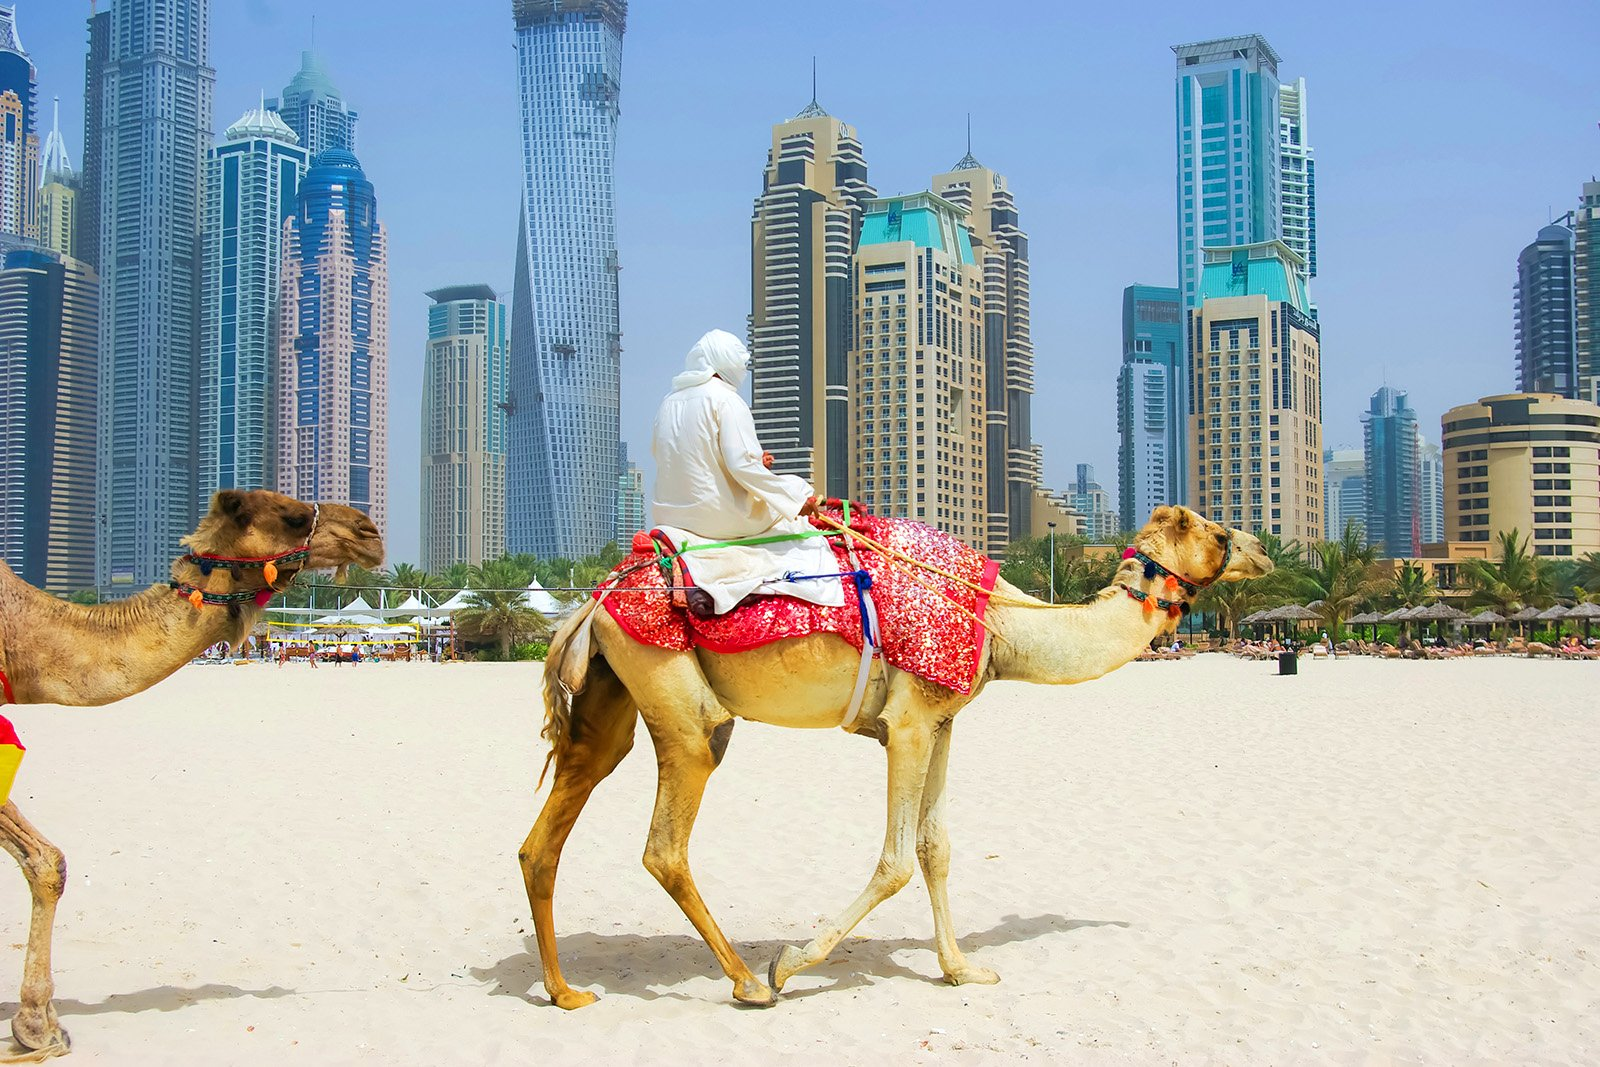 How to ride a camel on marina beach in dubai altavistaventures Choice Image